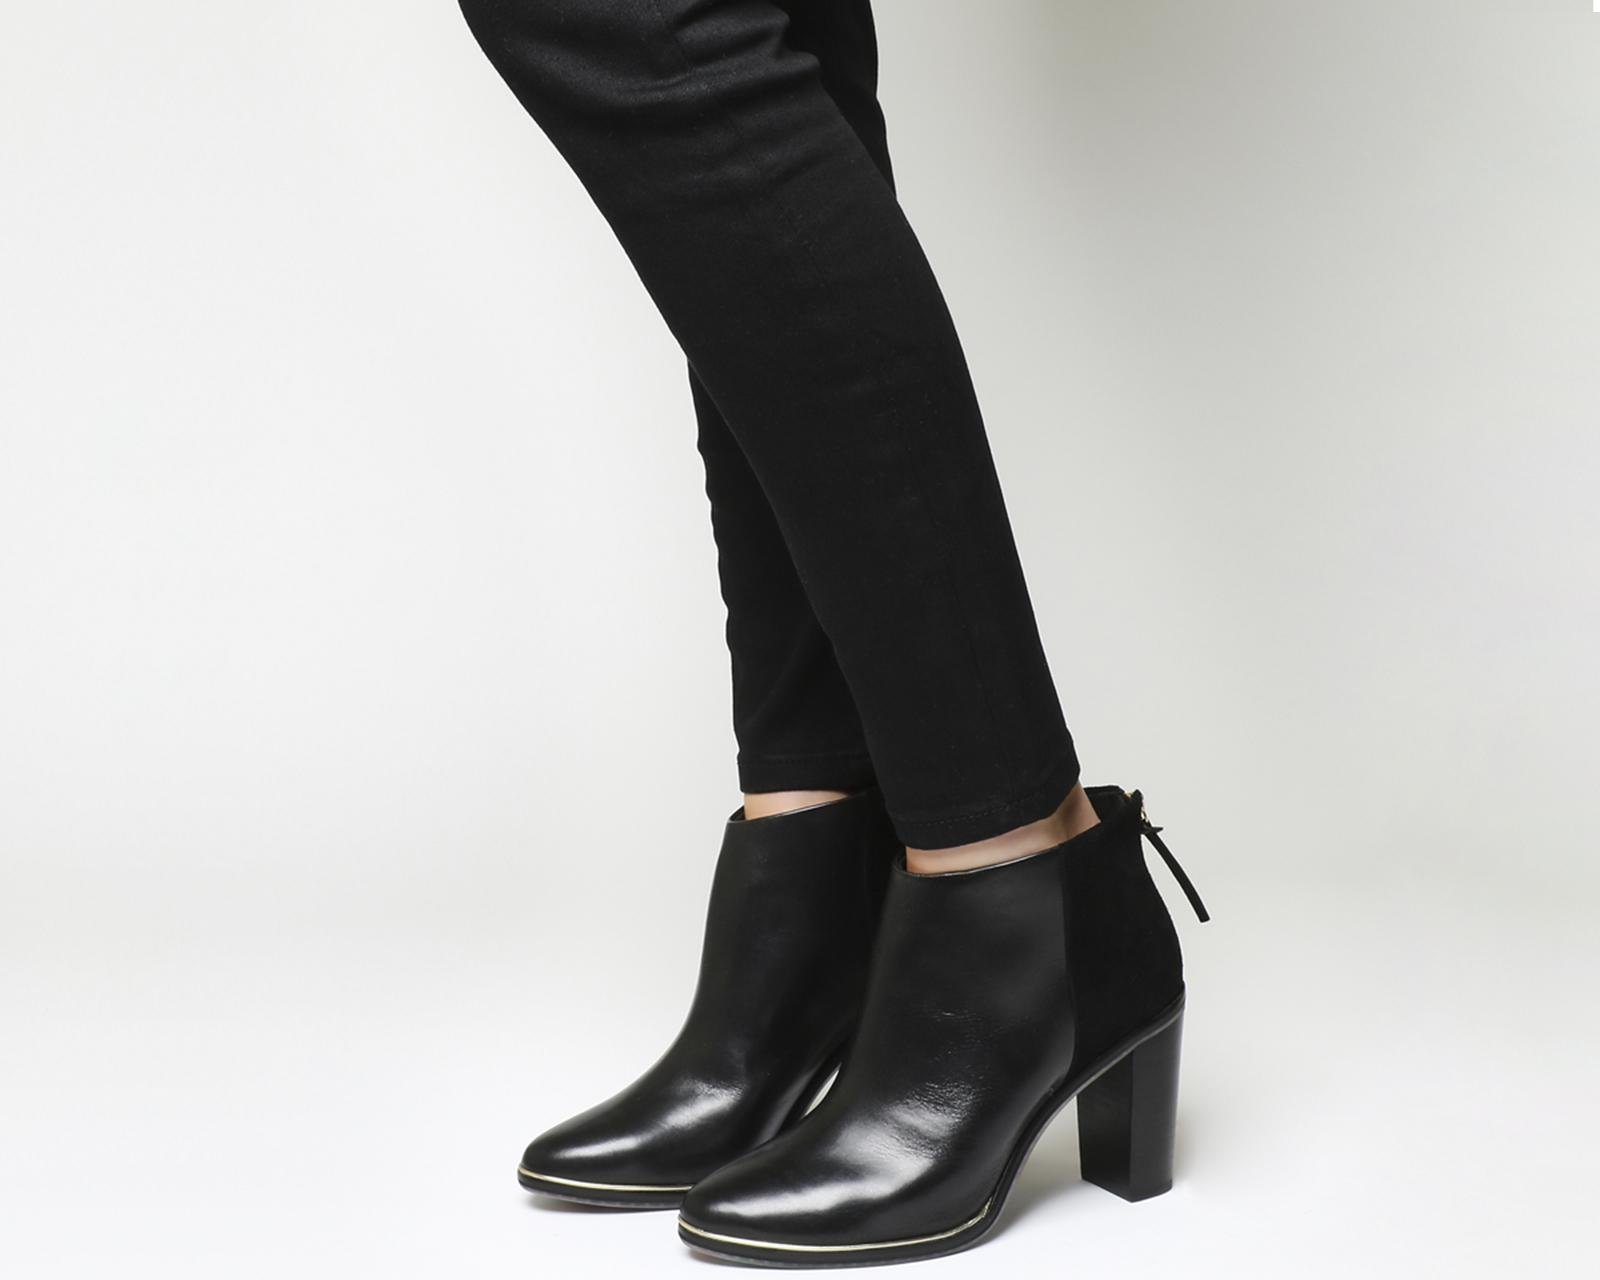 040e3c817be9 Lyst - Ted Baker Azaila Ankle Boots in Black